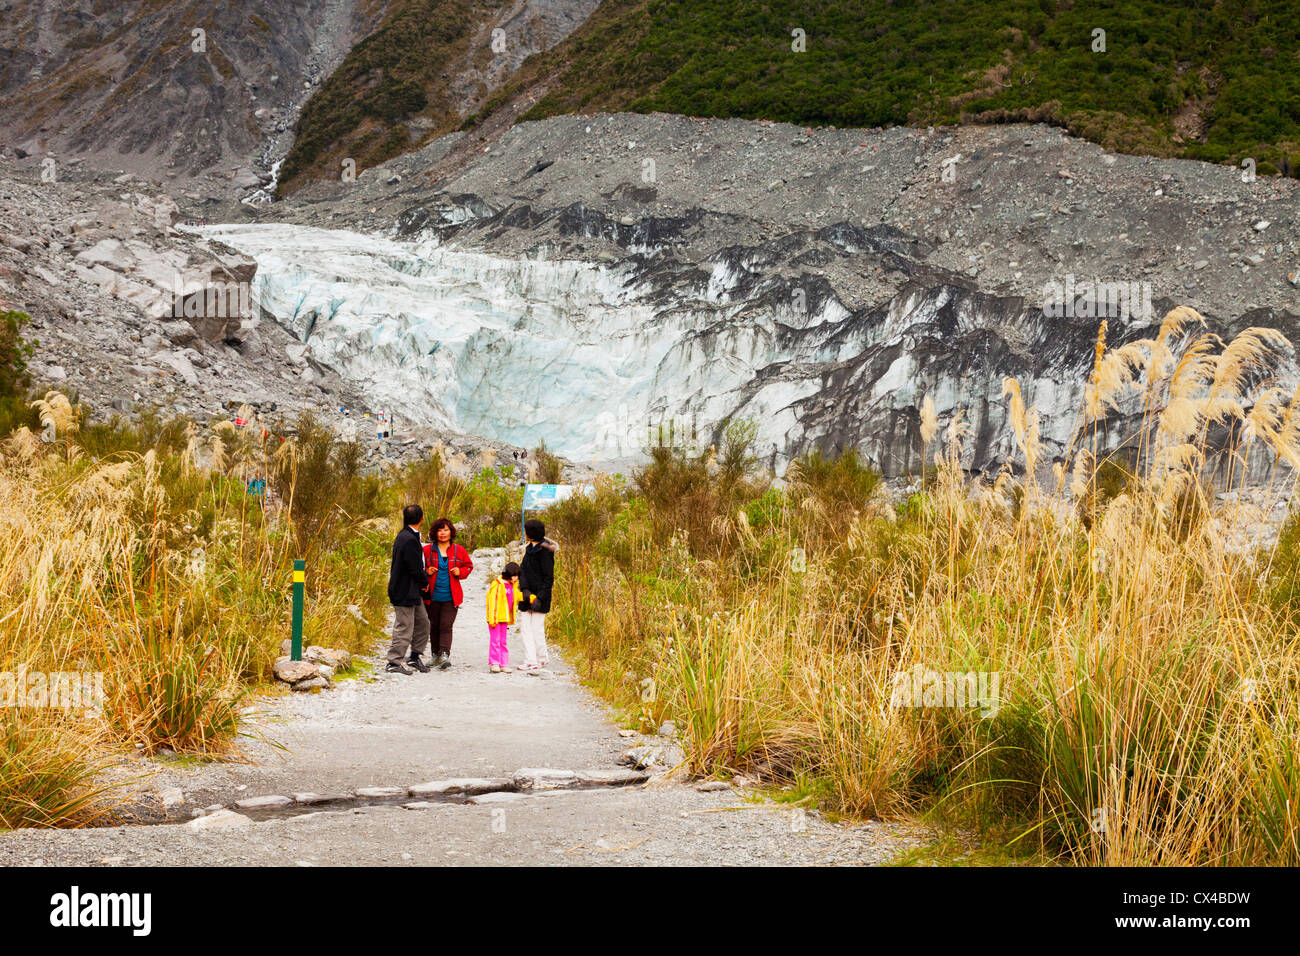 Group of tourists leaving the terminal of Fox Glacier, West Coast, New Zealand. - Stock Image